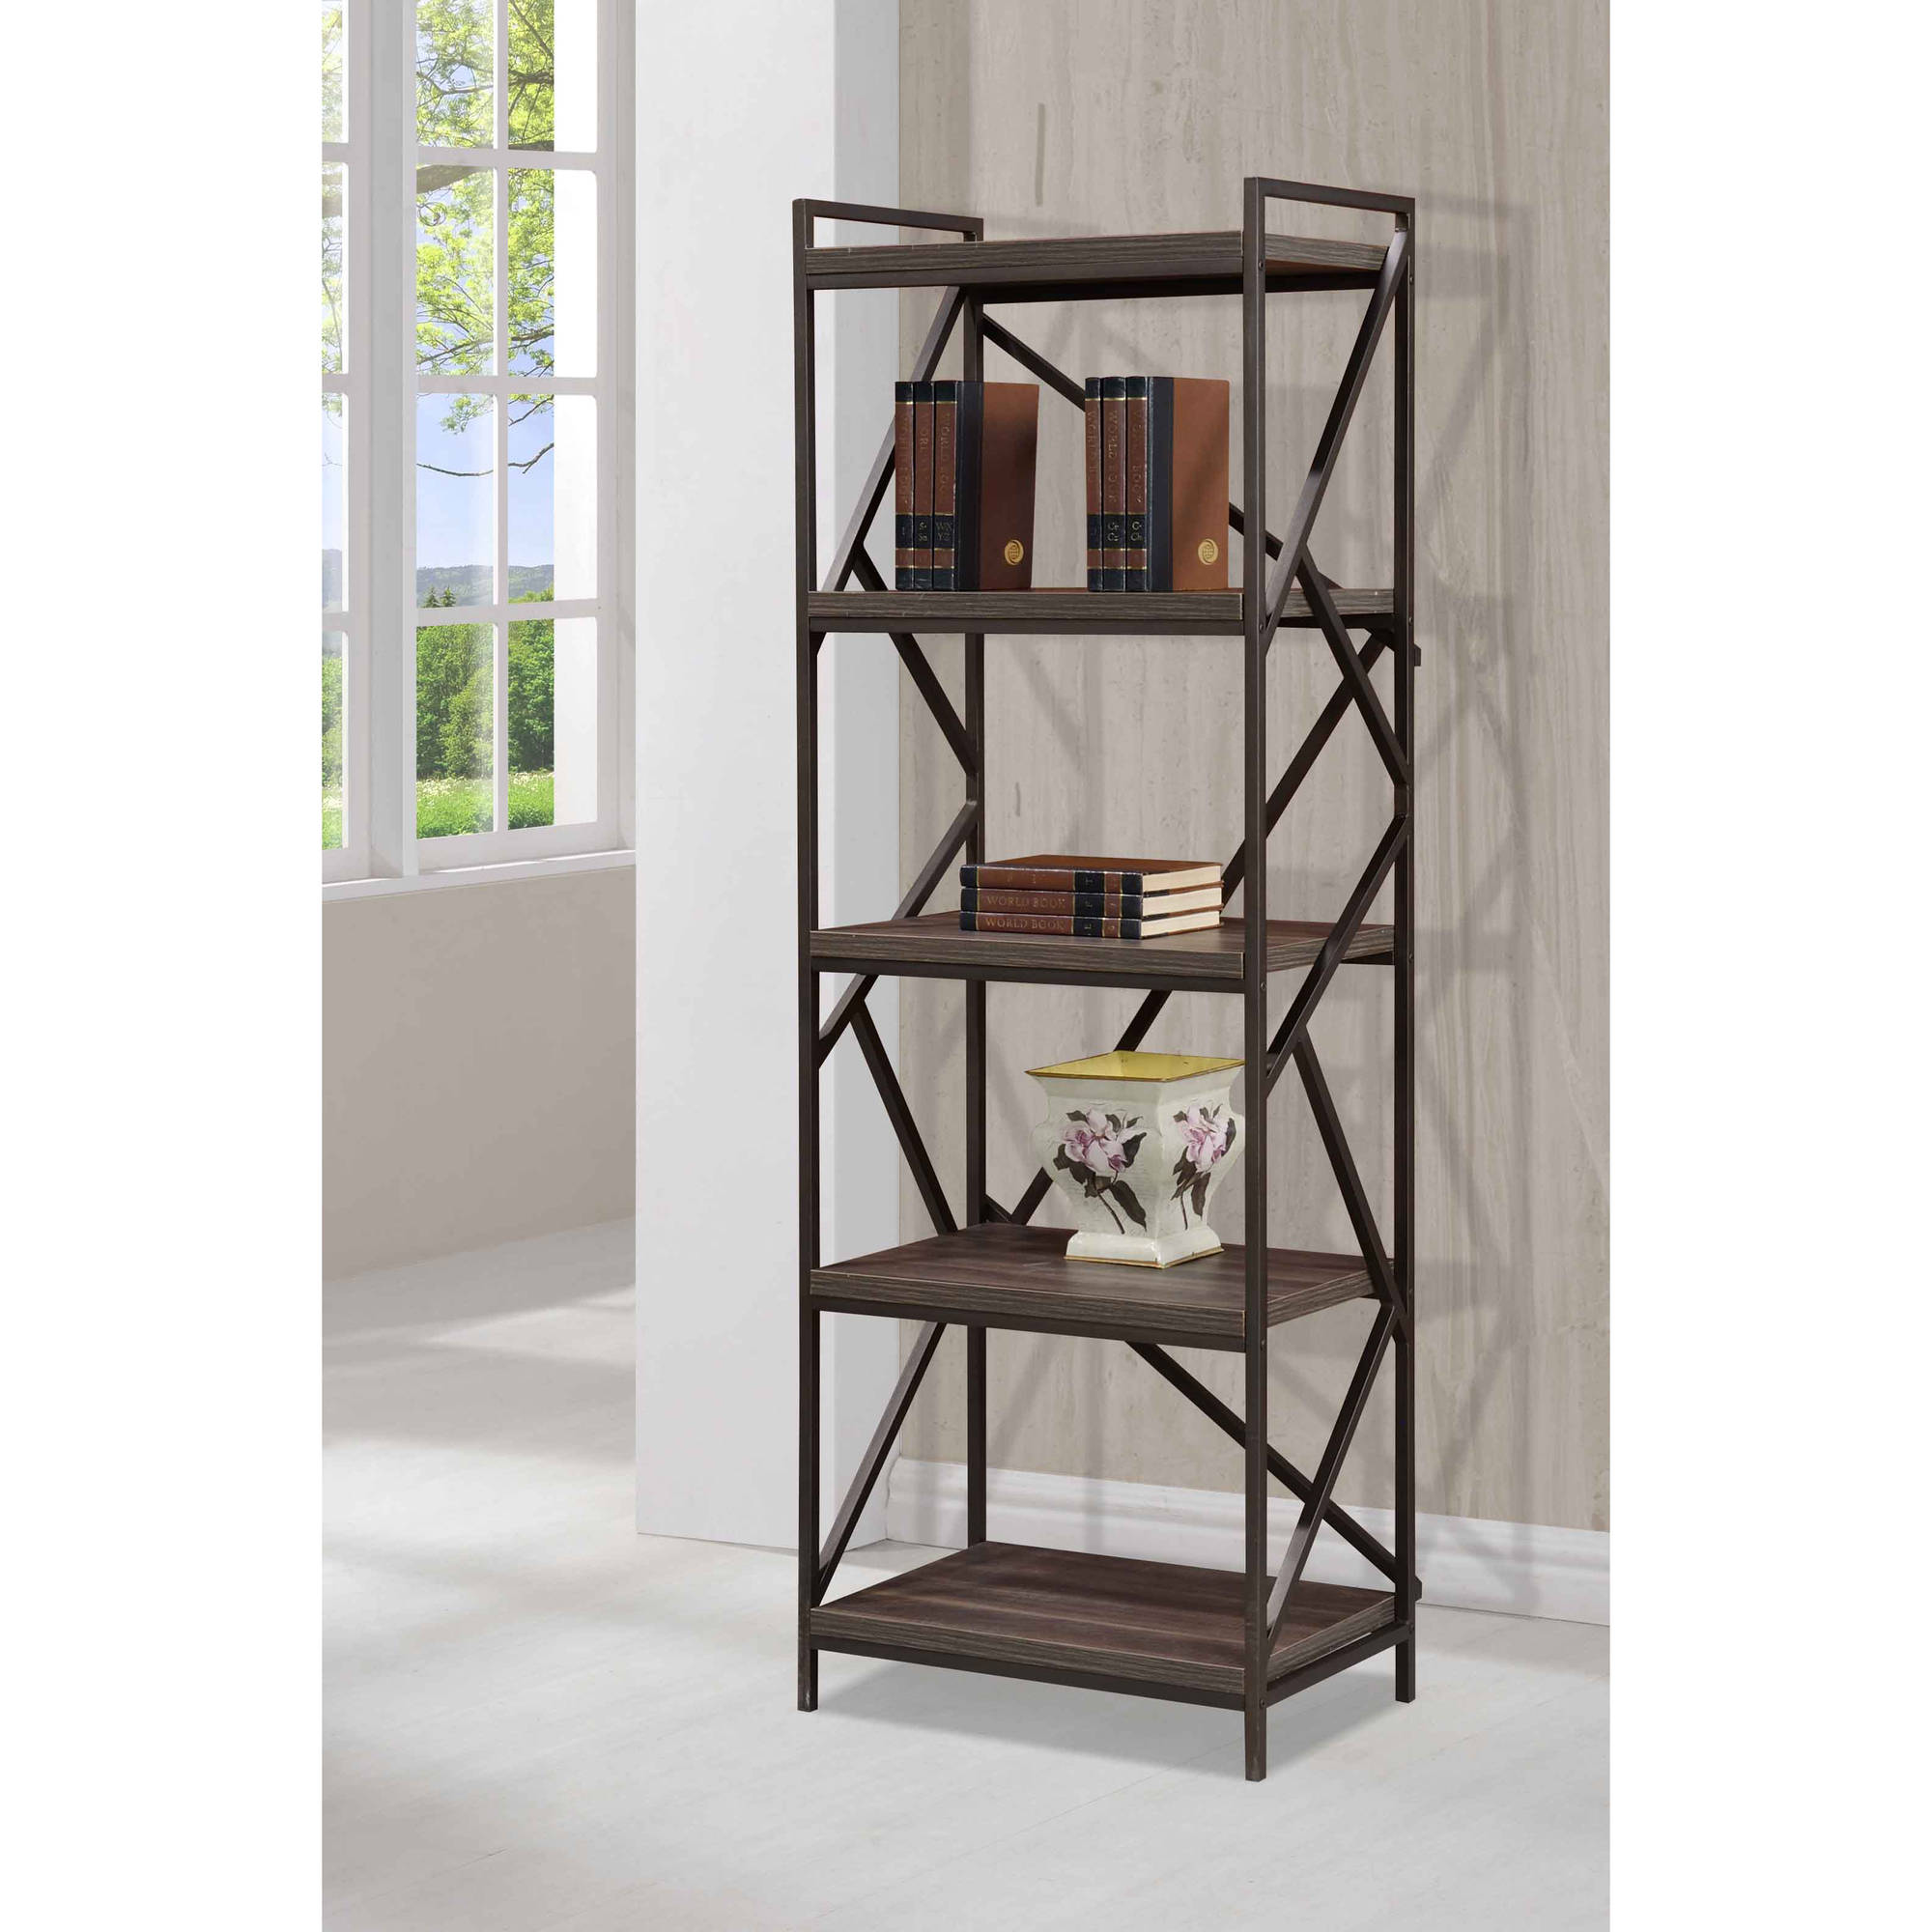 Imagio Home's Lifestyles Studio Living Collection Metal/Wood 5-Tier Shelf, Weathered Dark Grey